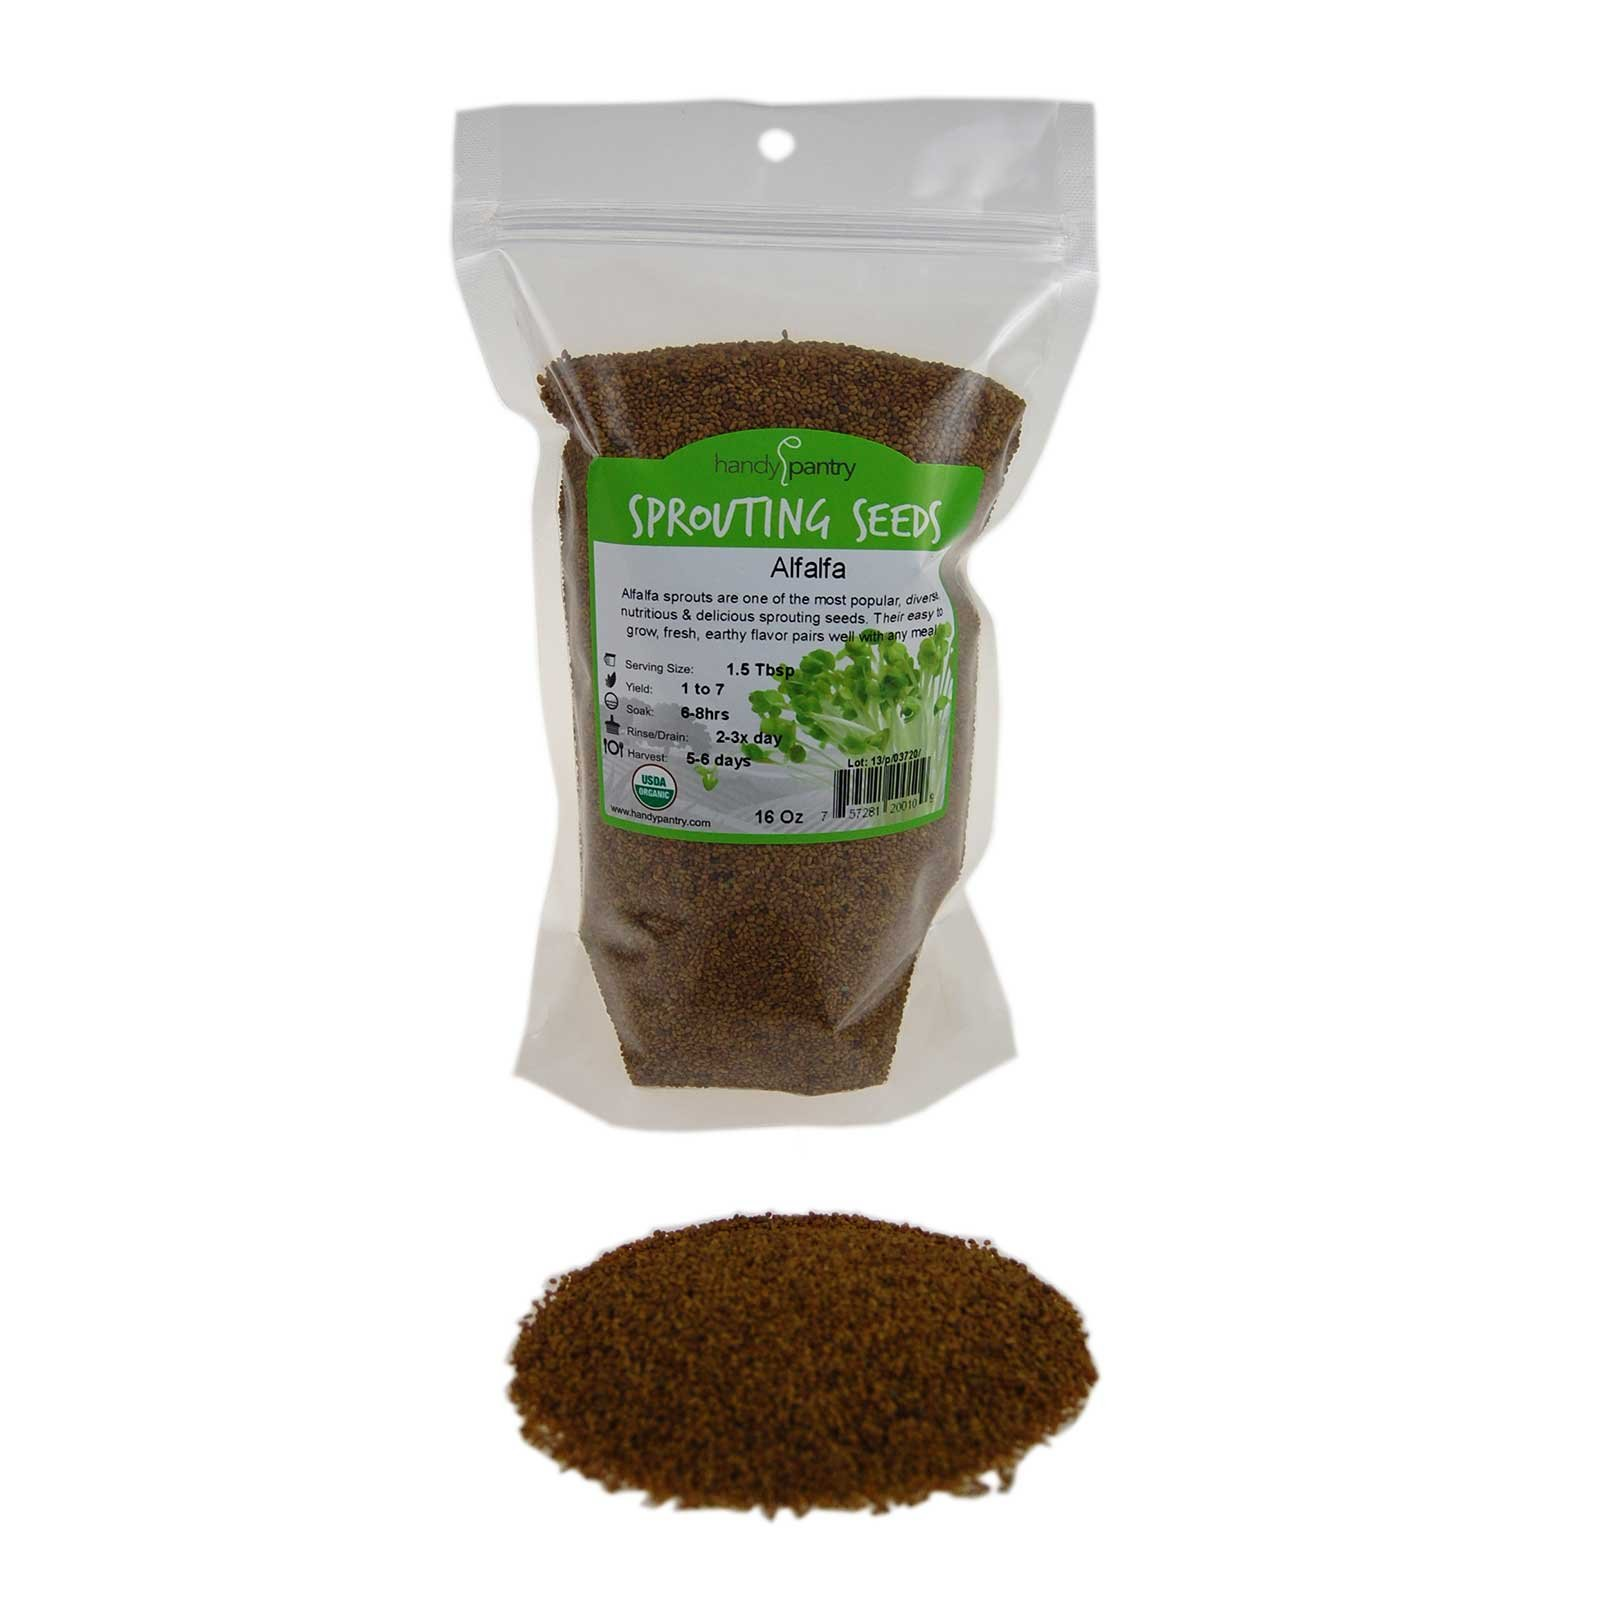 Organic Alfalfa Sprouting Seeds - 1 Lbs - Resealable Bag - Handy Pantry Brand - Growing Sprouts, Food Storage & More